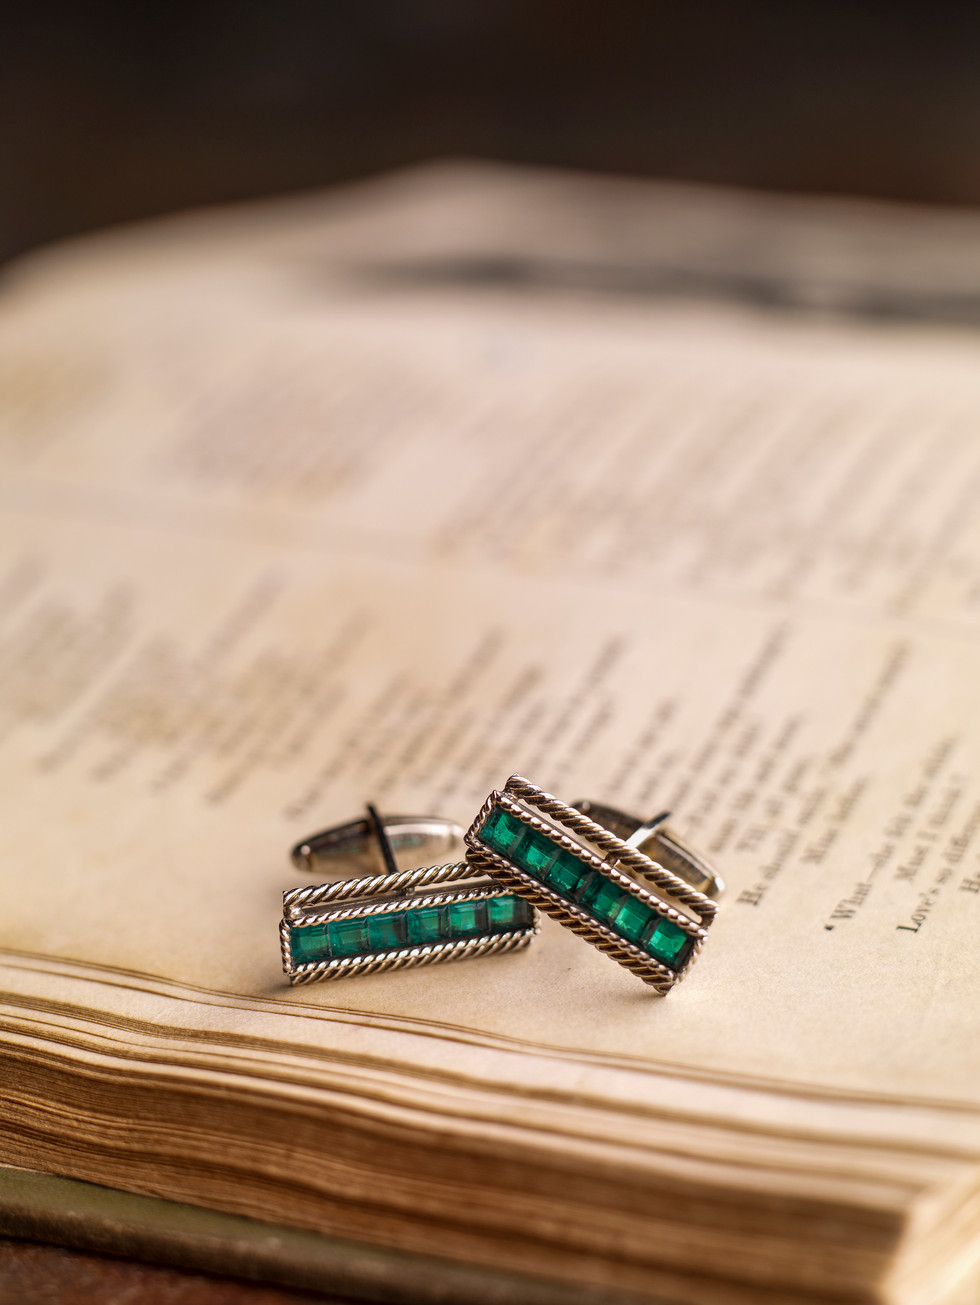 Antique Cuff Links On Book